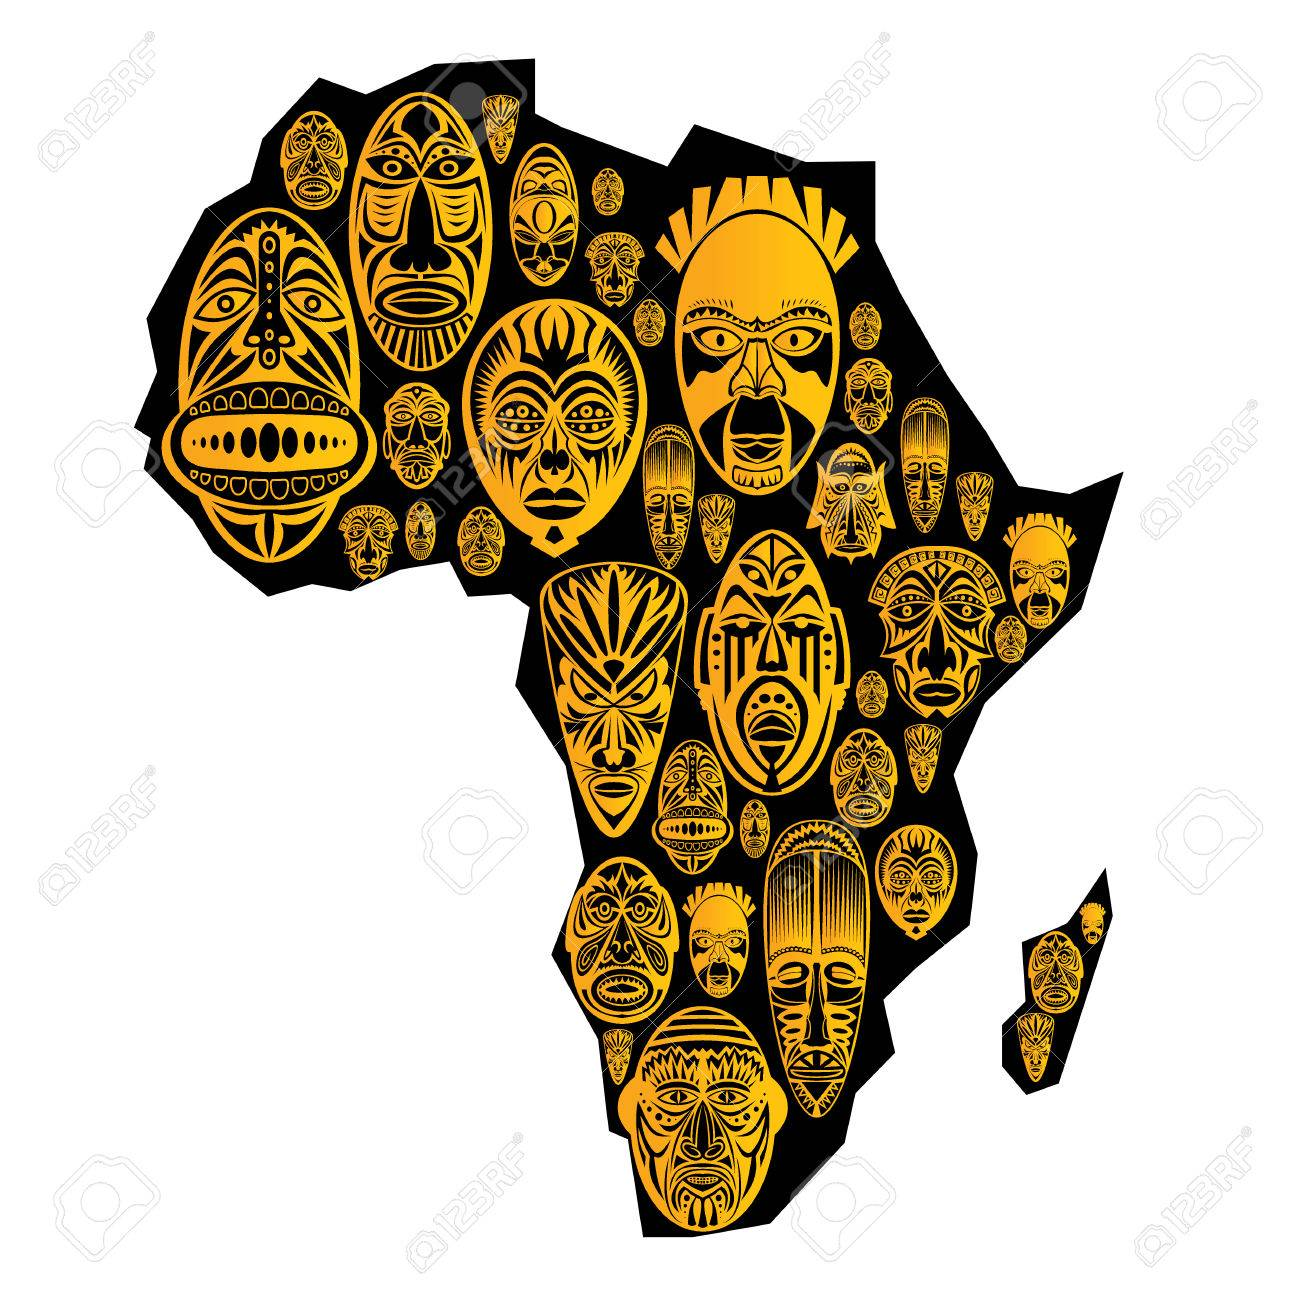 Map of africa with vector tribal ethnic masks in white background map of africa with vector tribal ethnic masks in white background stock vector 52258794 biocorpaavc Image collections